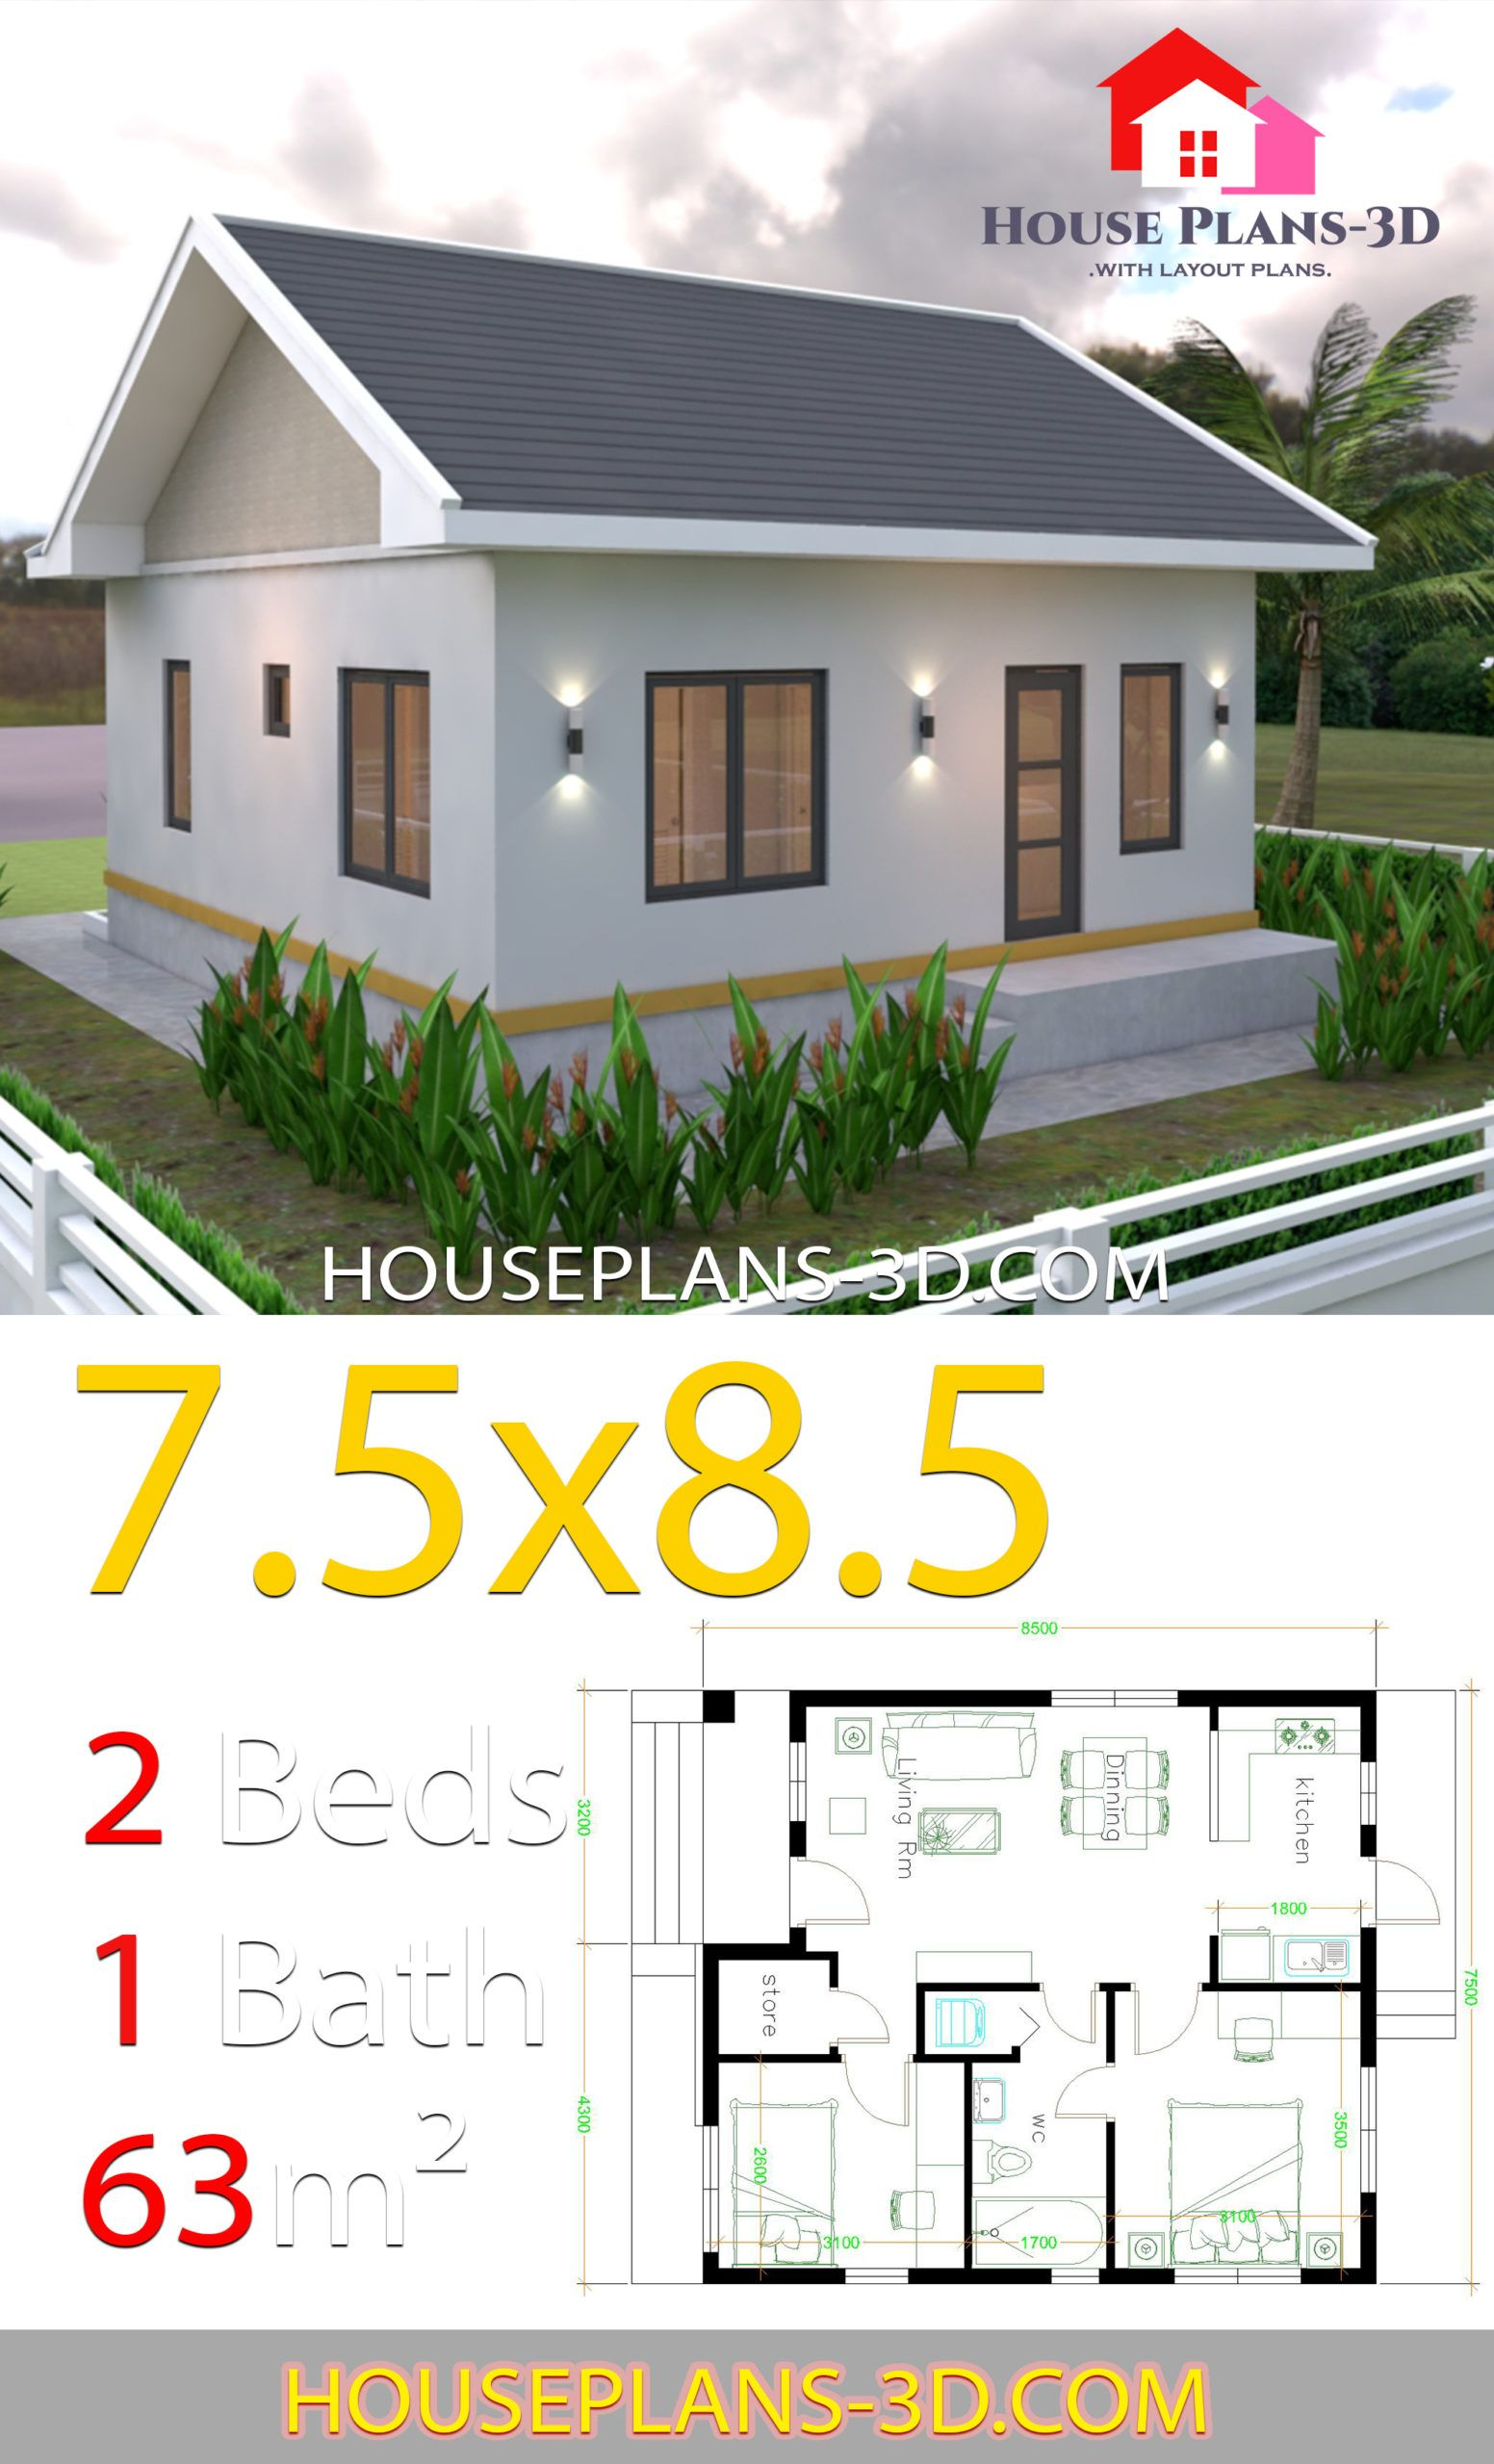 House Plans 7 5x8 5m With 2 Bedrooms Gable Roof House Plans 3d Gable Roof House Small House Exteriors House Roof